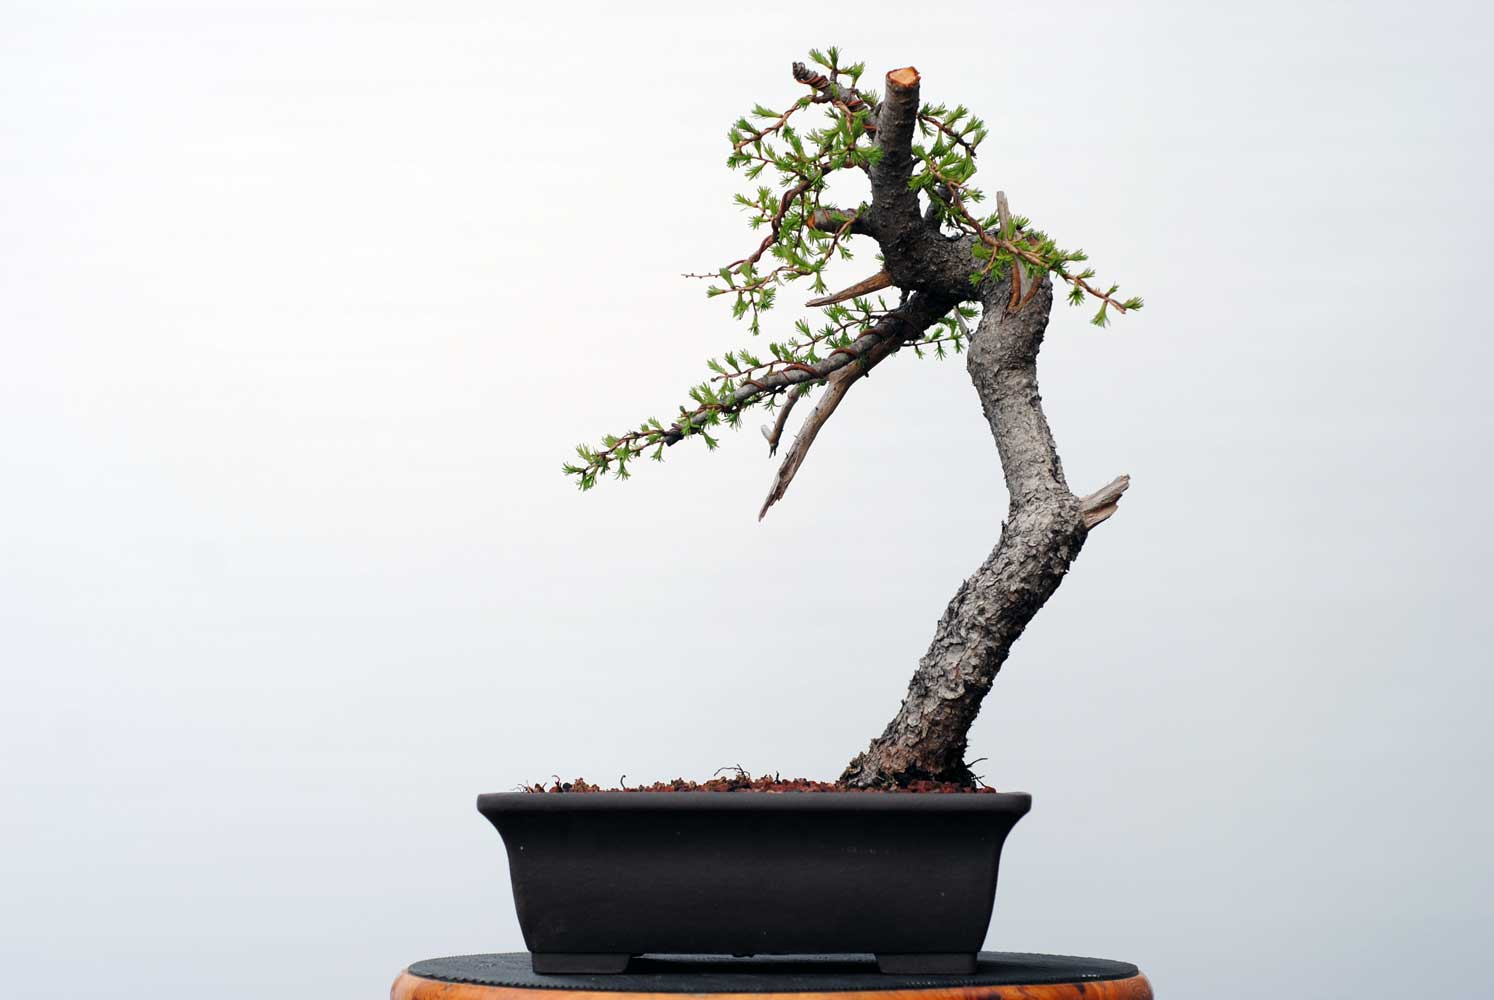 Lakeshore Bonsai In Toronto Canada Wiring For Beginners This Sinuous Larch Was Styled A Couple Of Weeks Ago Massive Root Further